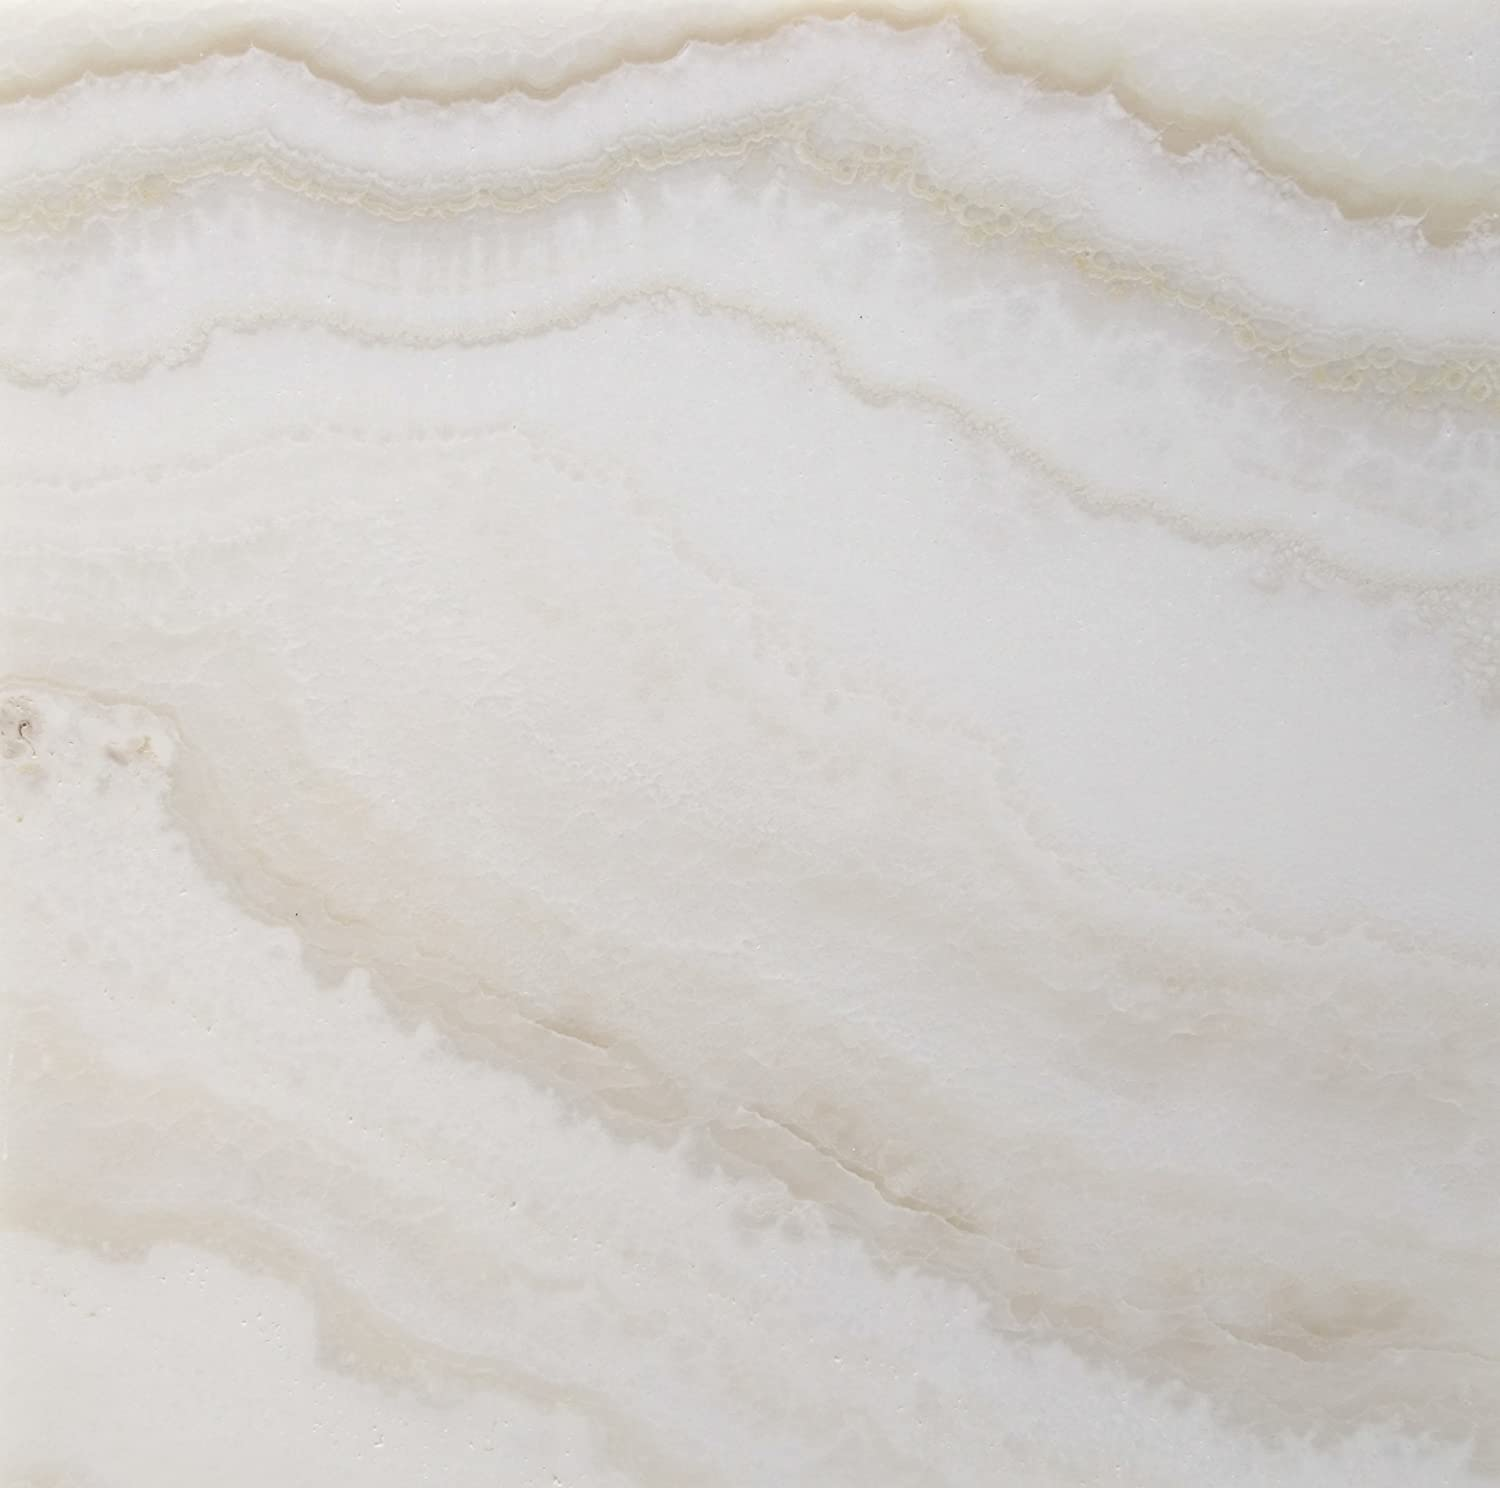 Premium White Onyx VEIN-CUT 12 X 12 Polished Tile - 2 pcs. 3\